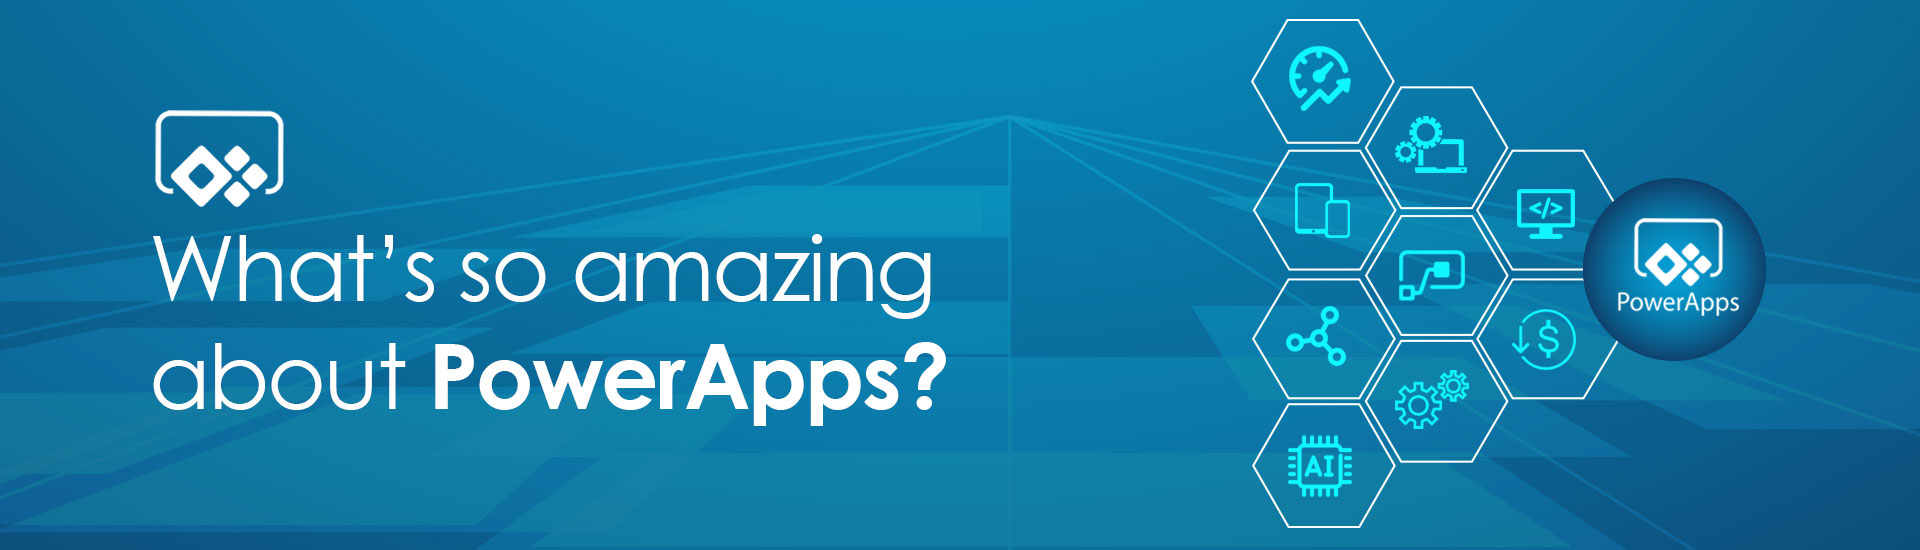 What's so amazing about PowerApps?